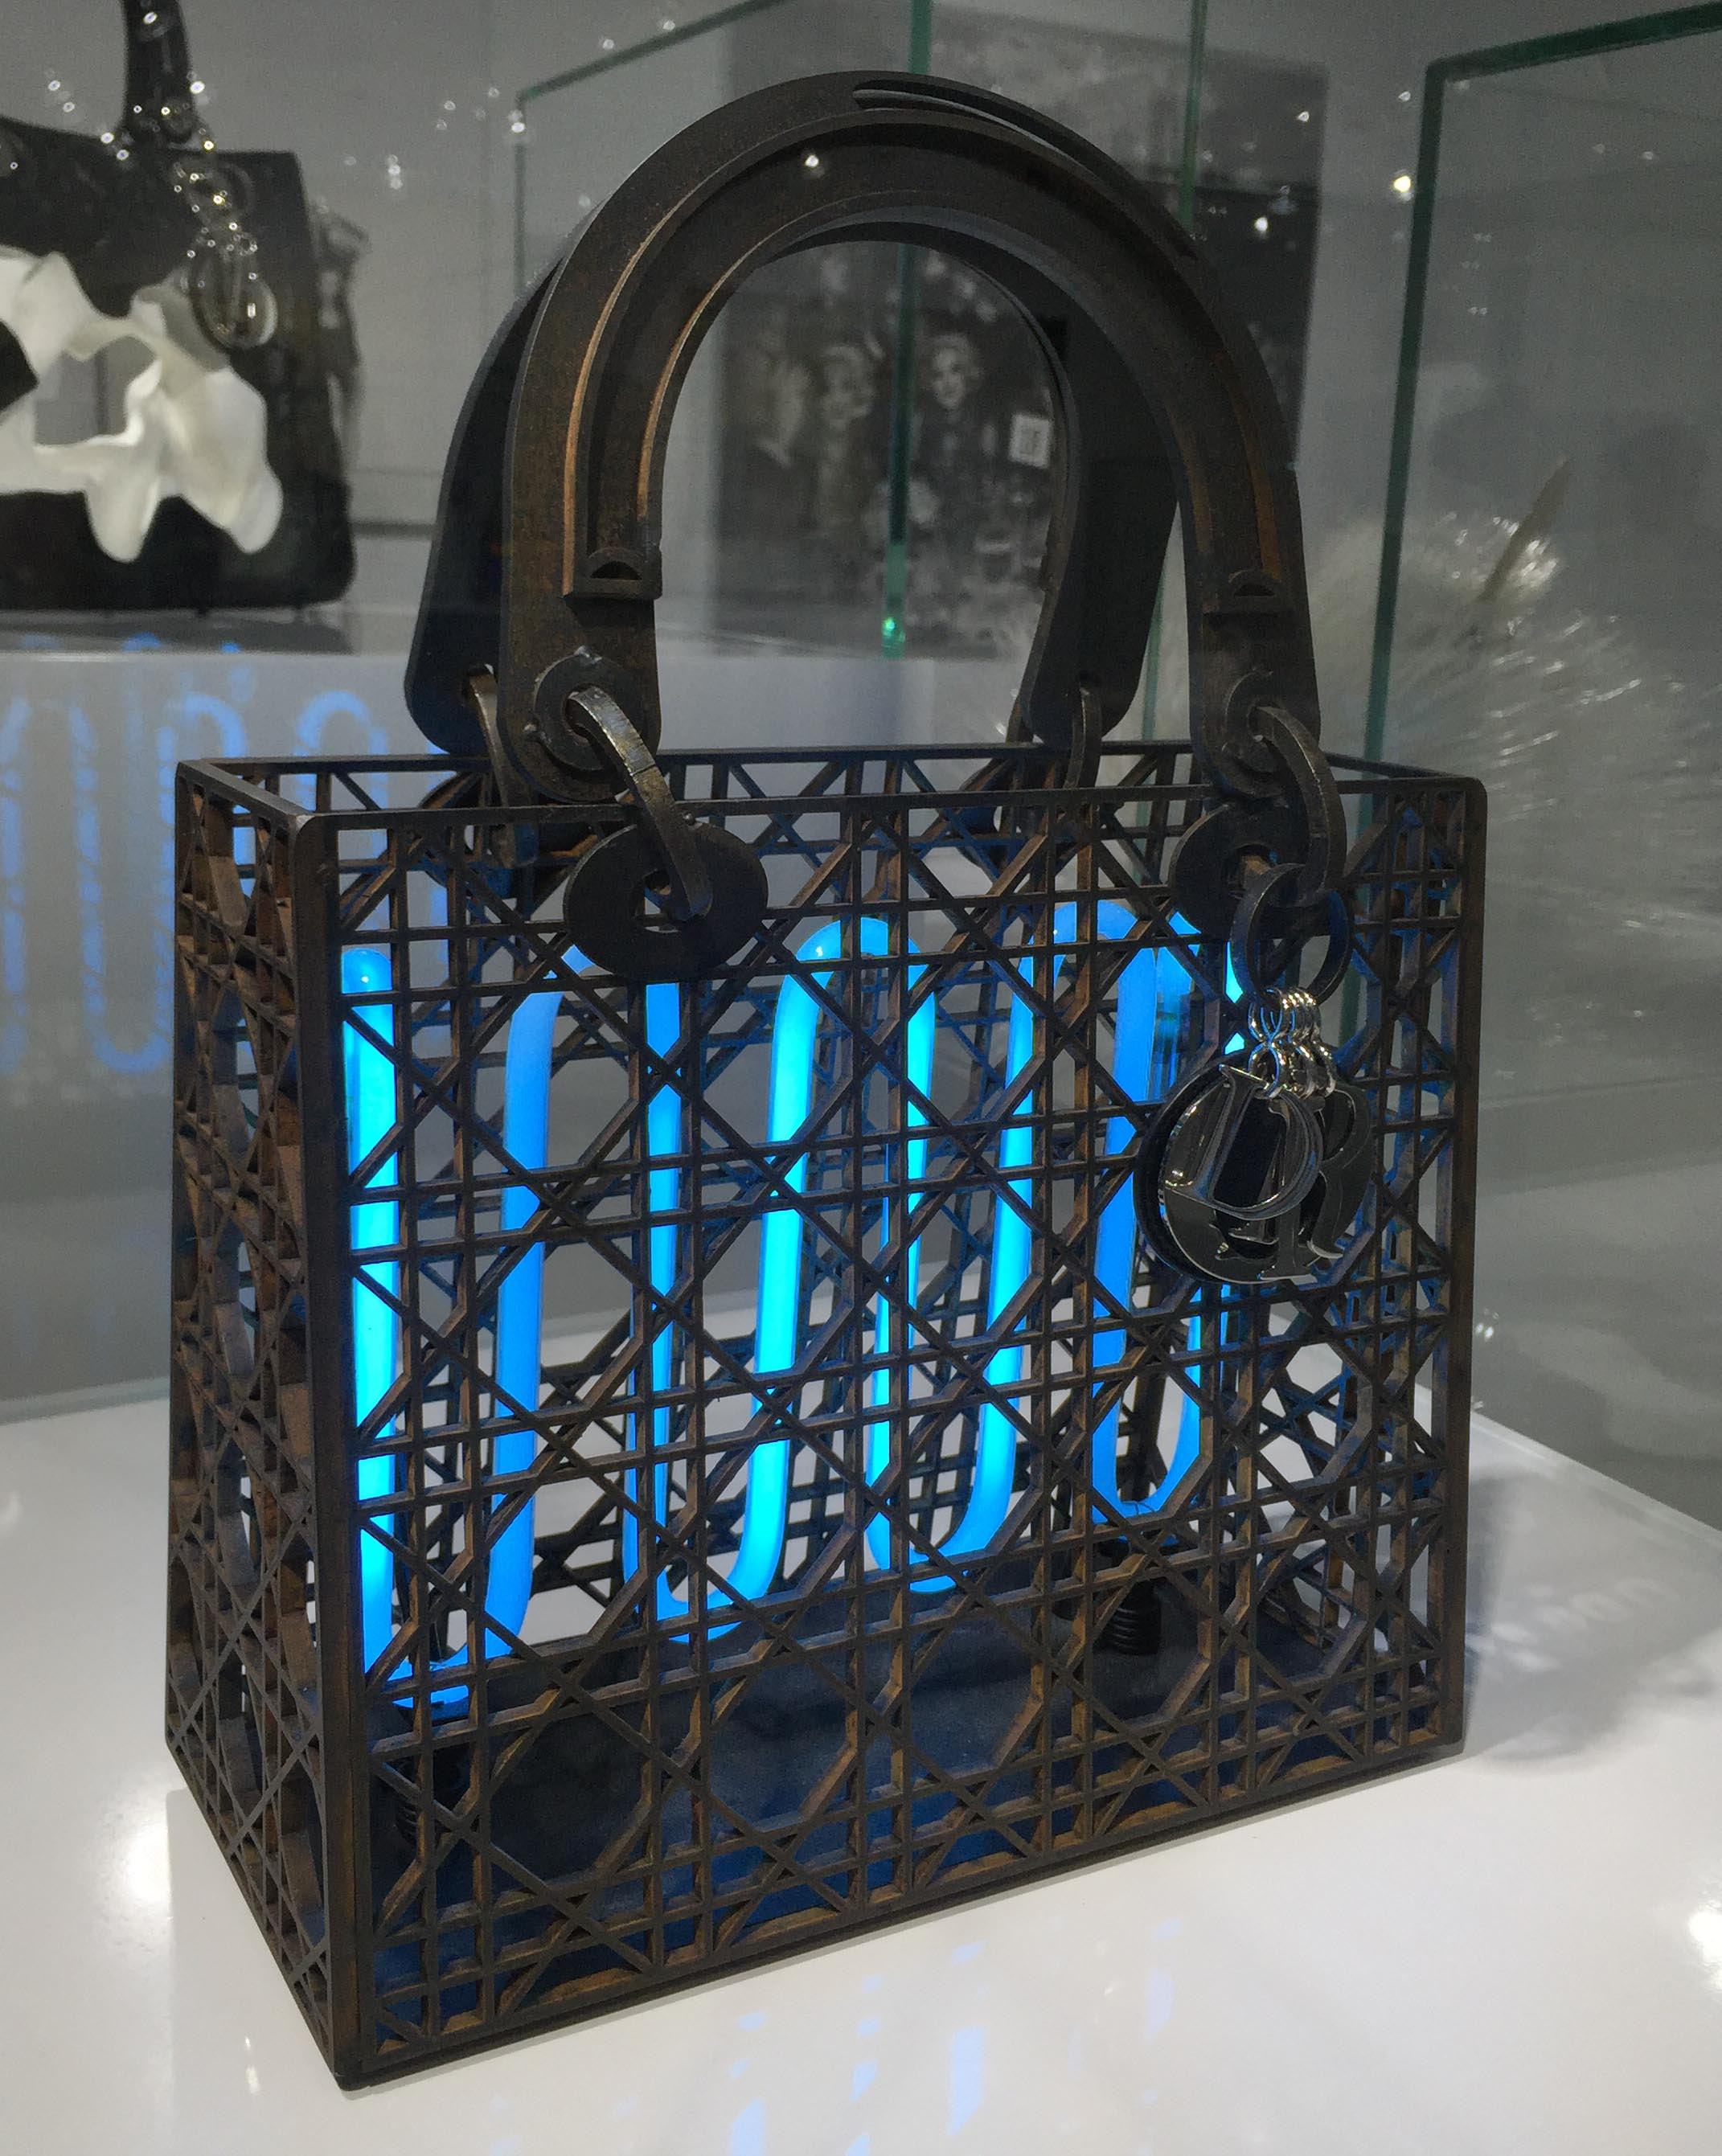 「Lady Dior As Seen By」 在台北